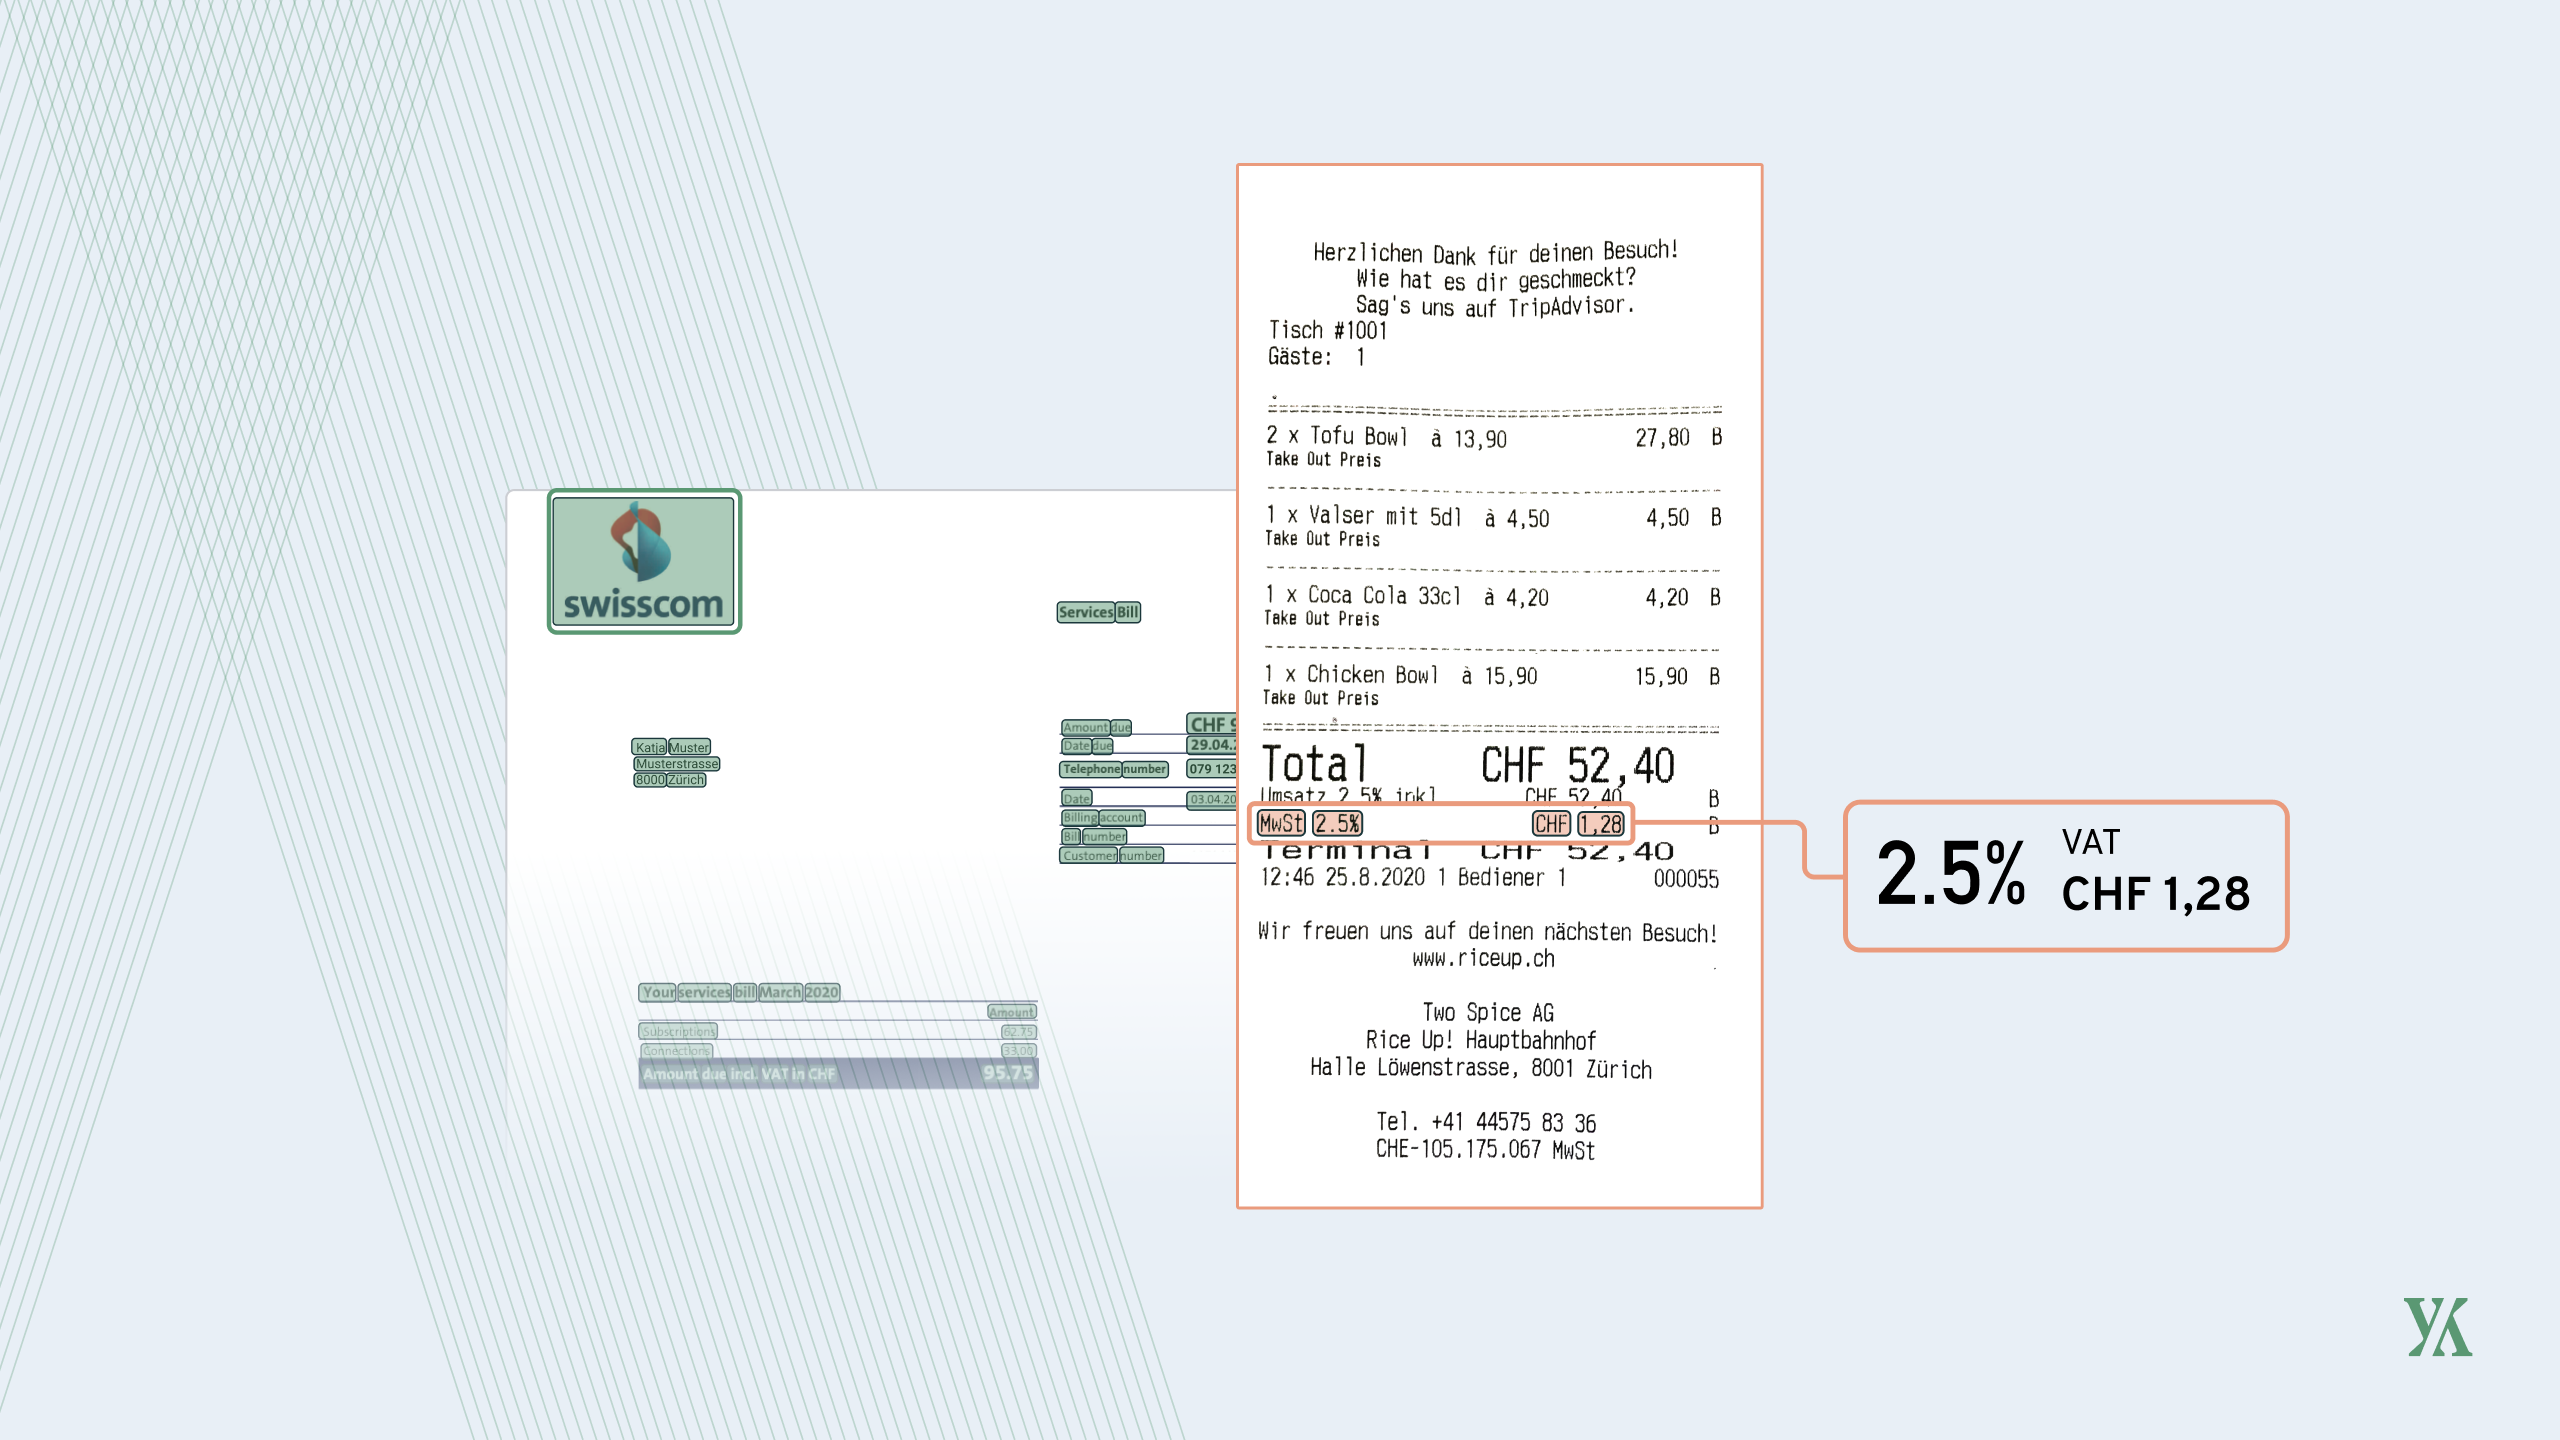 Header image with receipt showing VAT read out